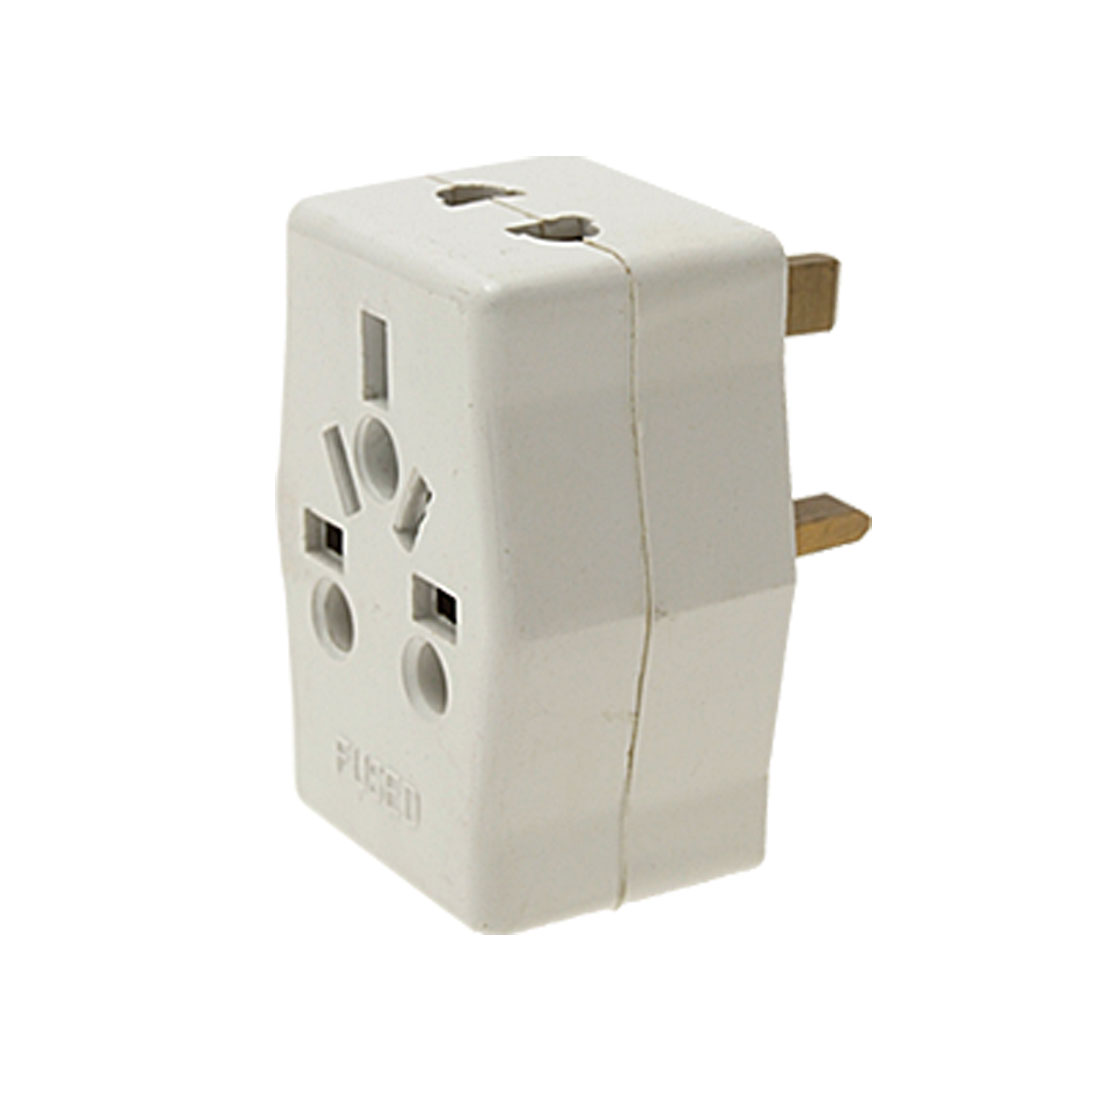 UK Plug Travel AC Power Plug Adapter with 4 Outlet 250V